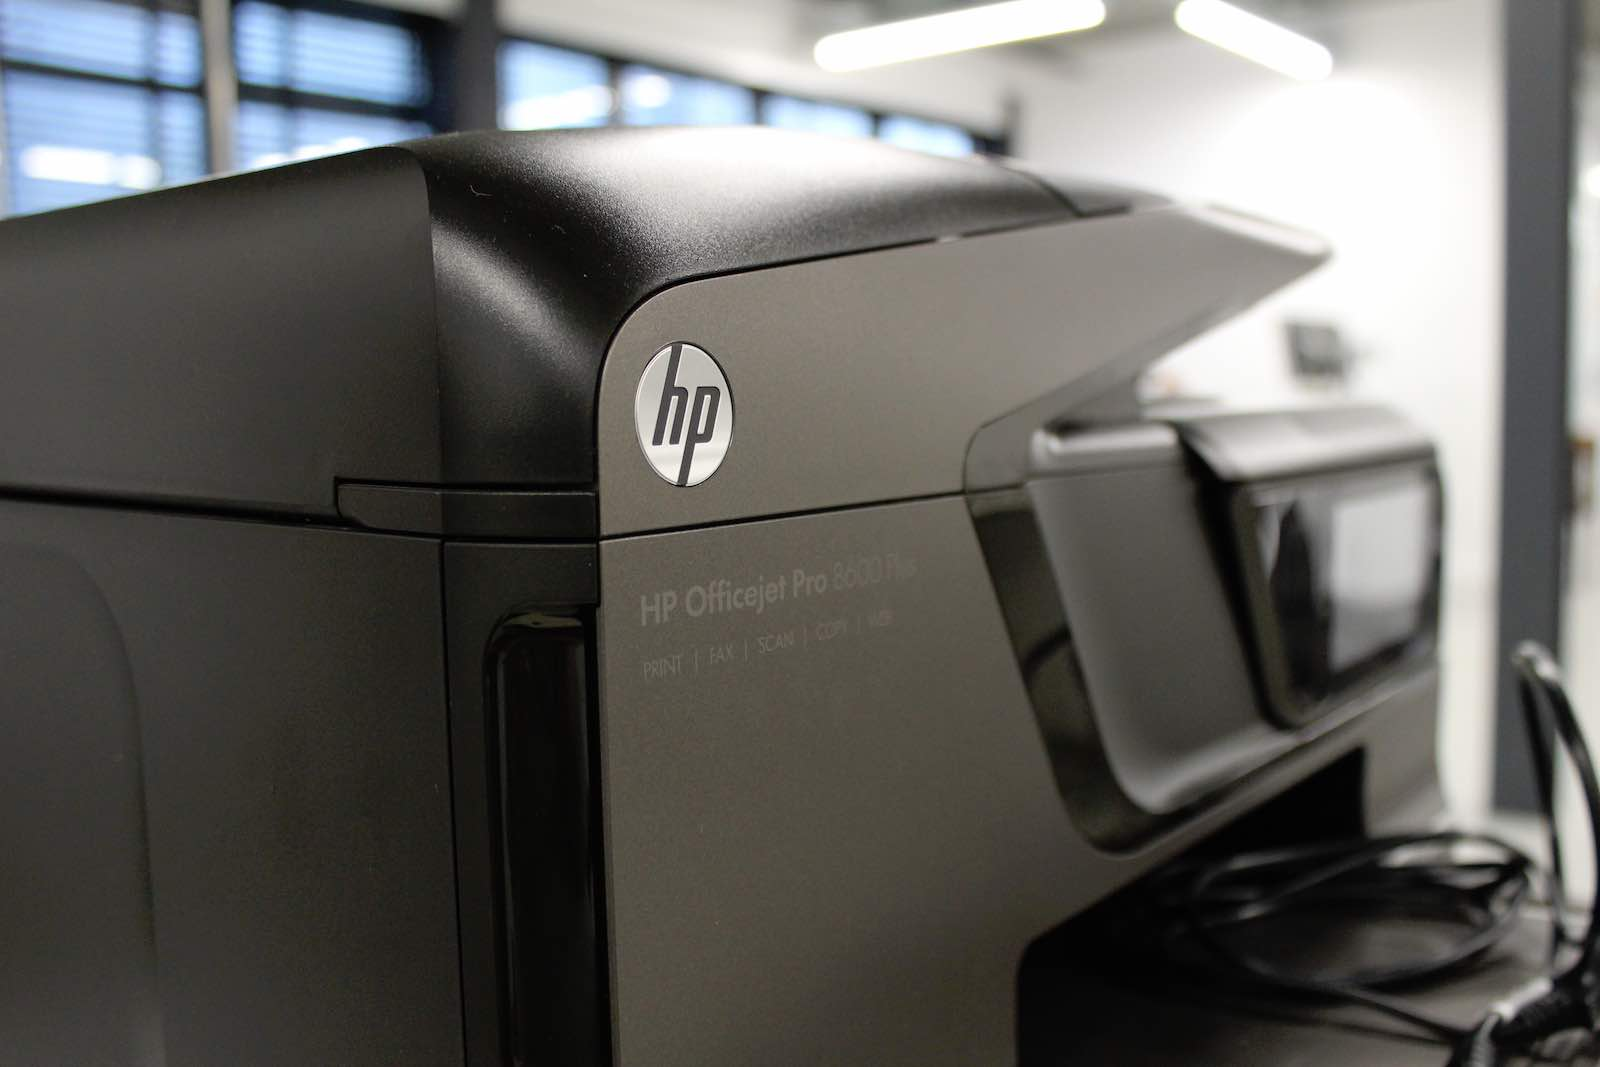 22 Things Every Working Production Coordinator Should Know - Bring Your Own Printer